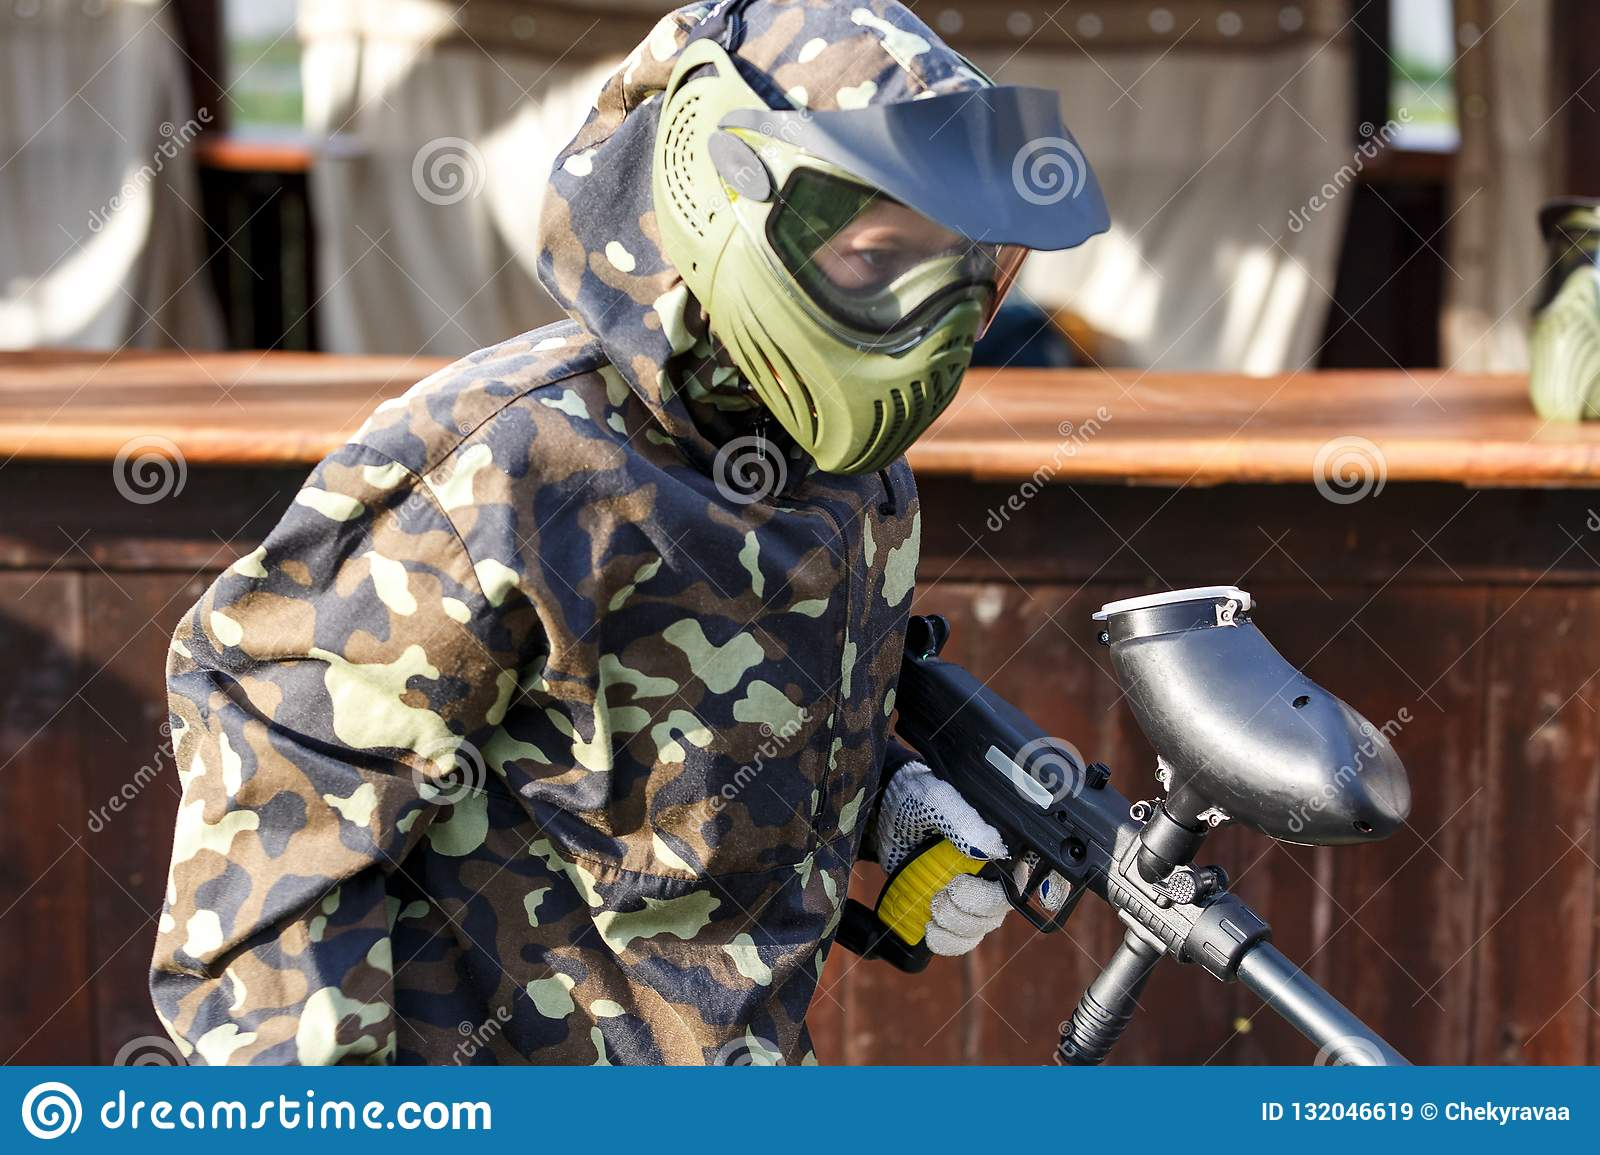 Boy is playing paintball on the field. paintball games can be played on indoor or outdoor fields